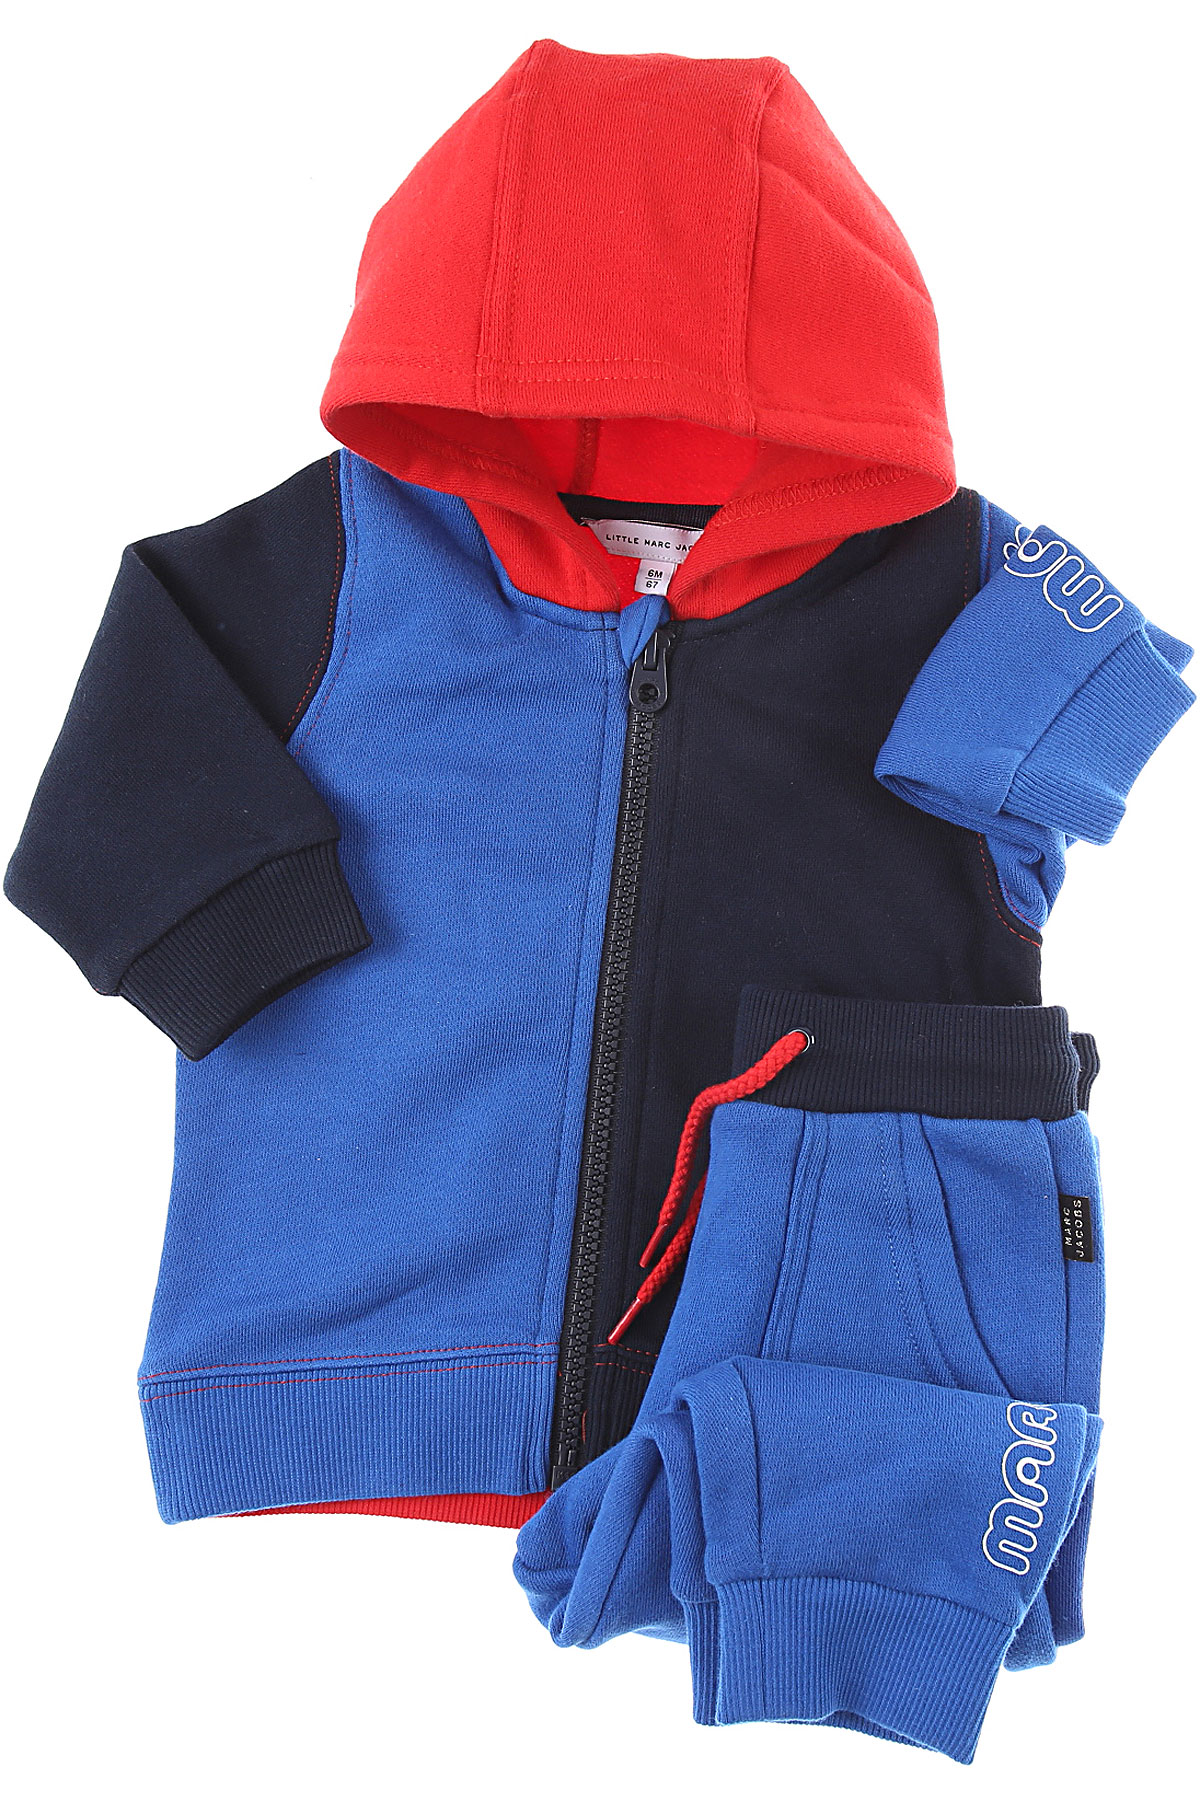 Marc Jacobs Baby Sets for Boys On Sale, Blue, Cotton, 2019, 2Y 2Y 3Y 6M 9M